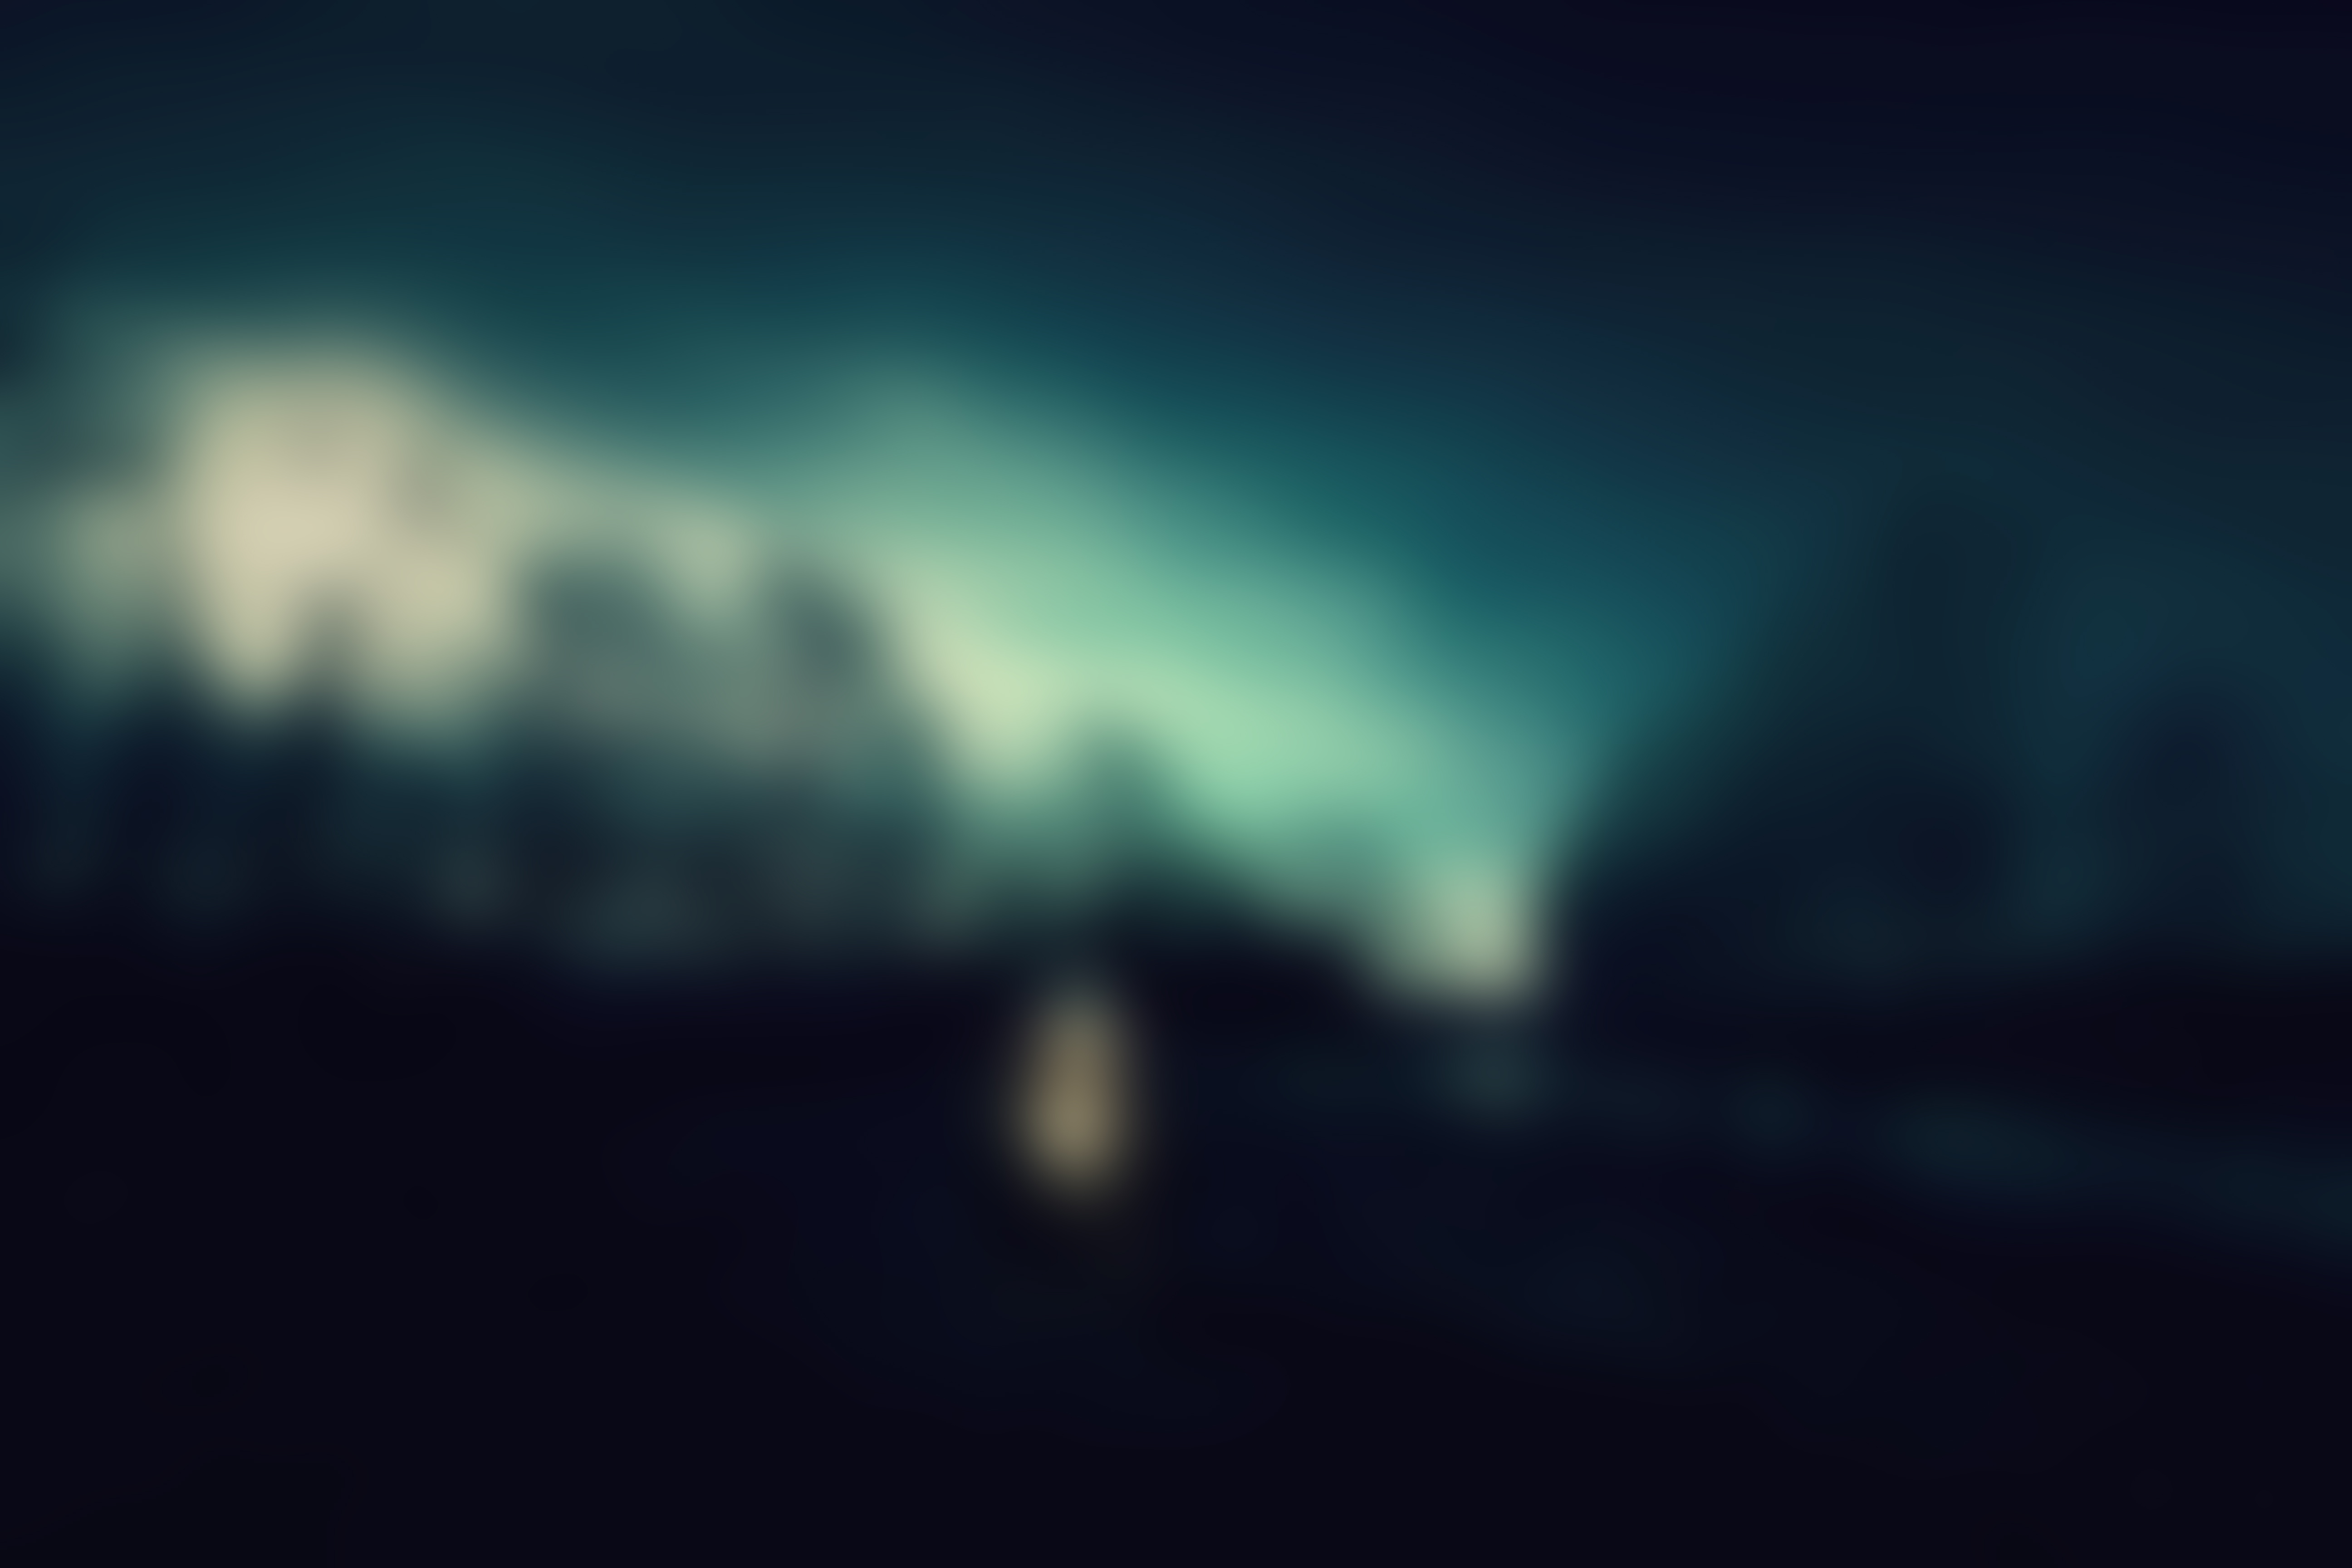 background blur blurred dark night free photo